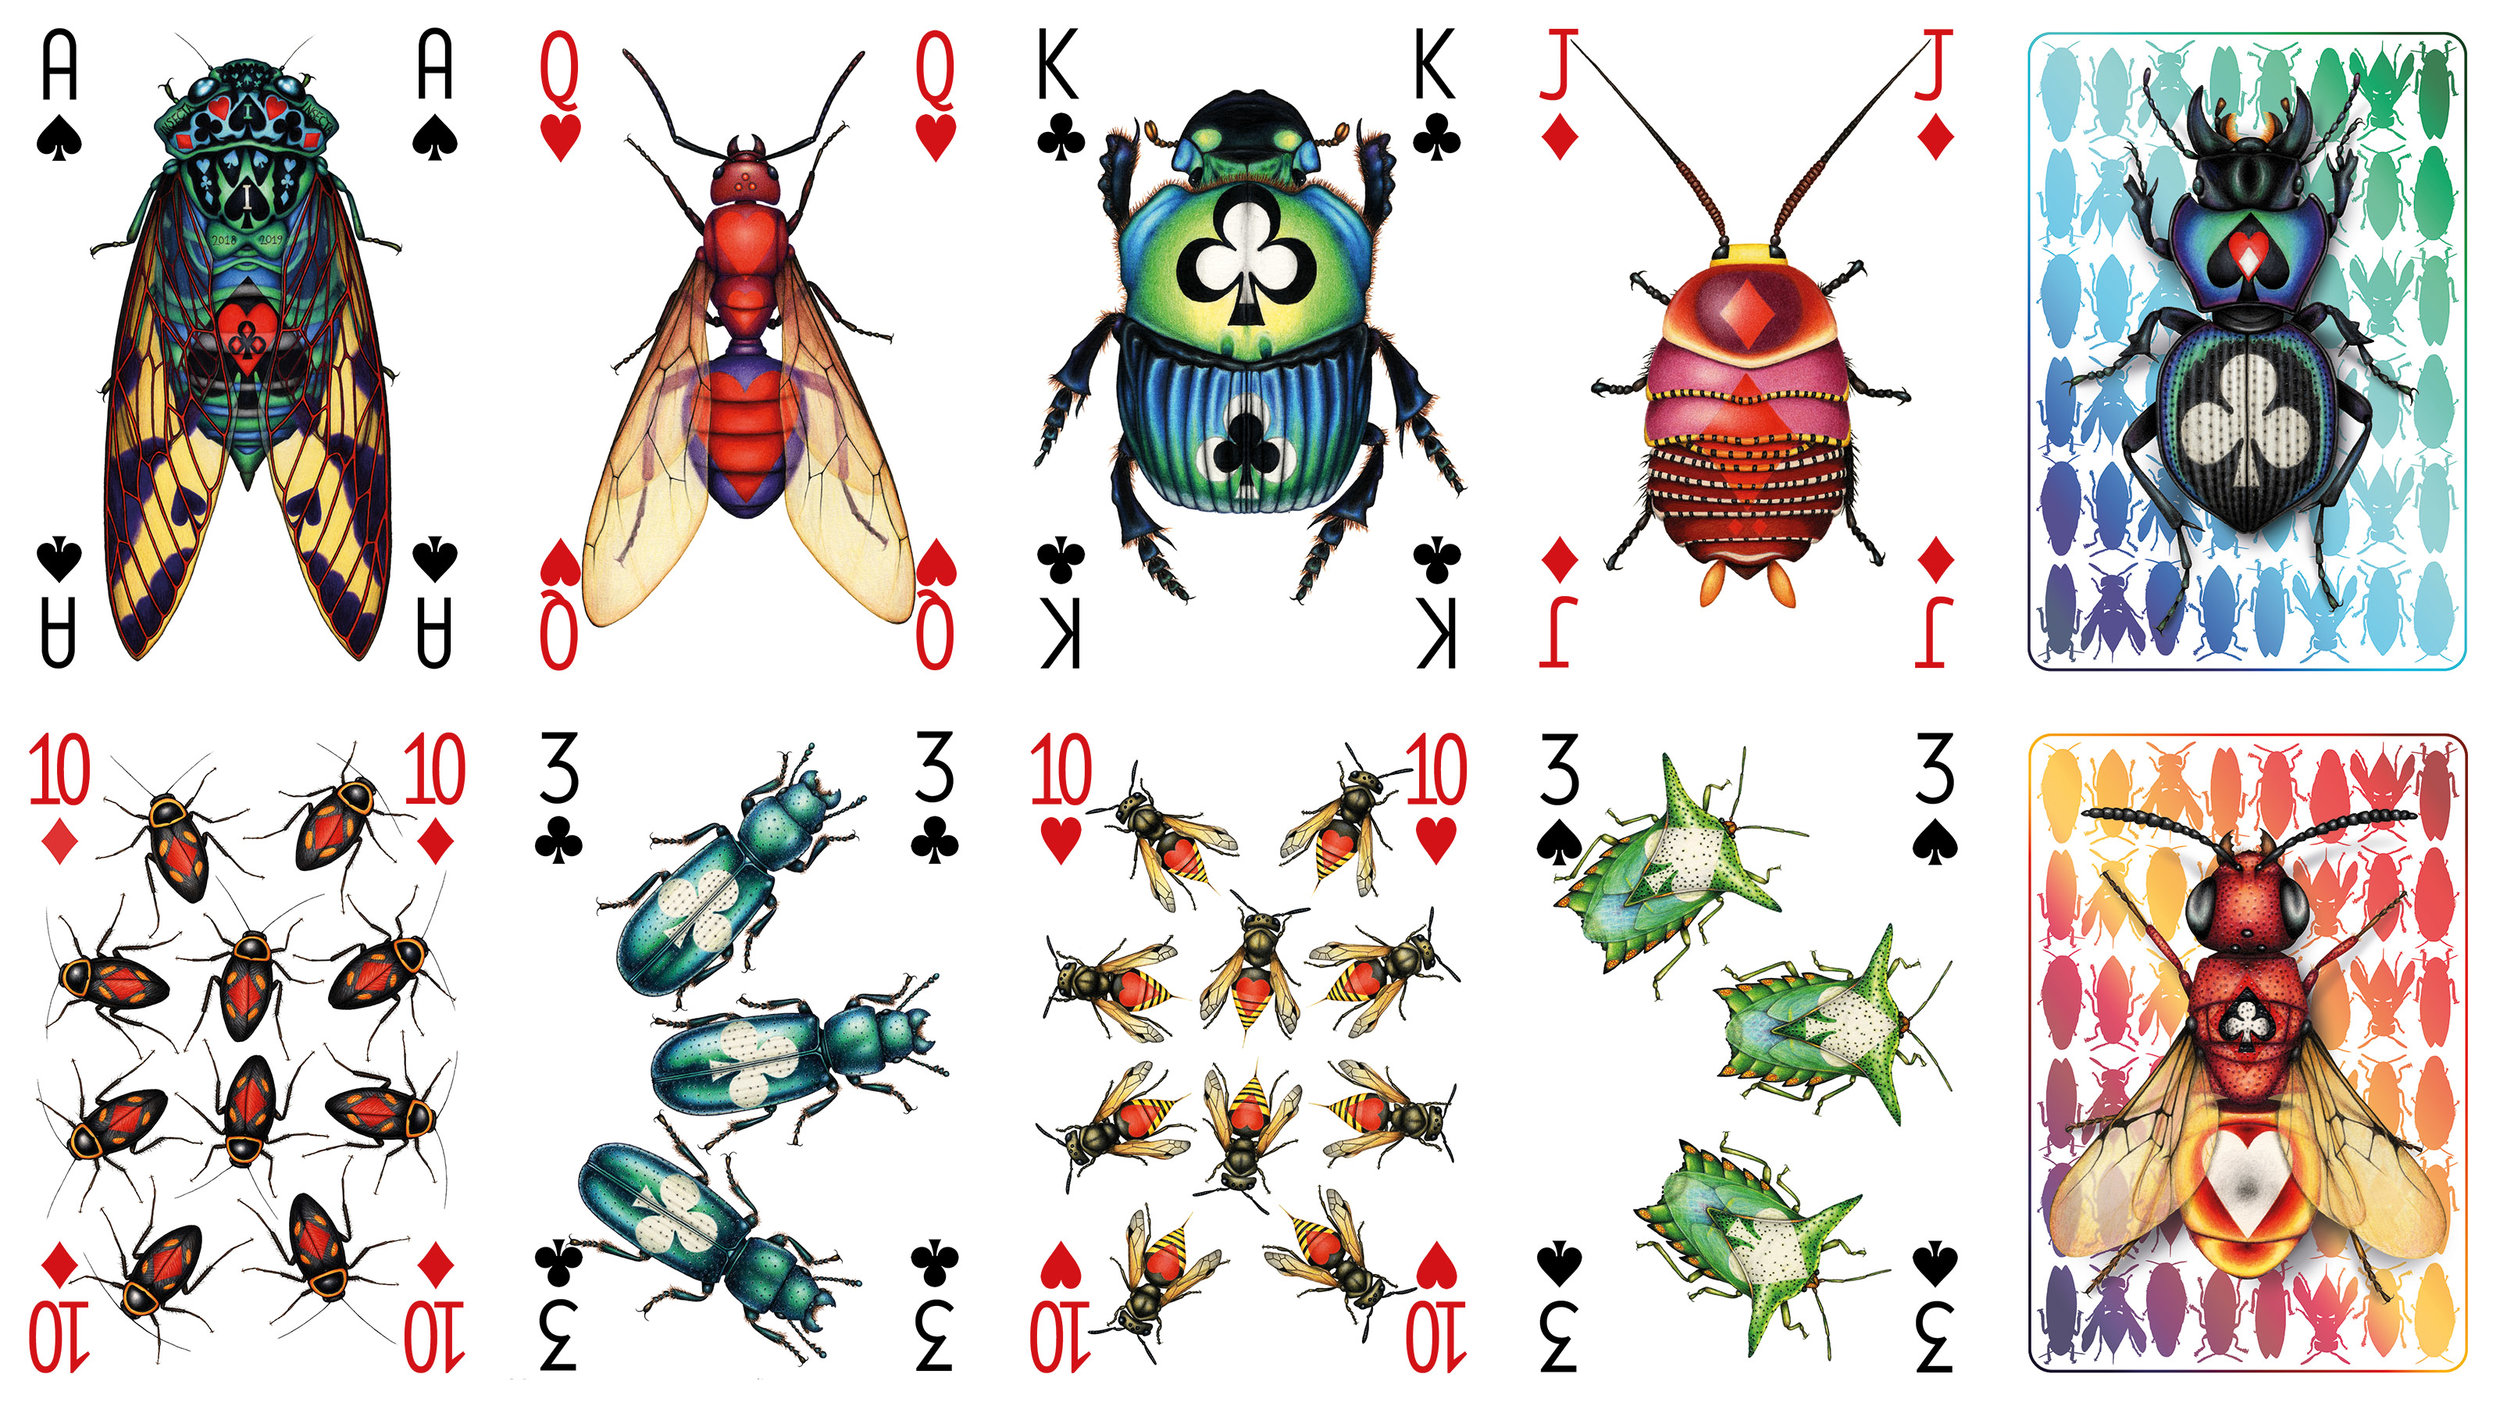 Image description; playing card art from an insect themed deck, in which the suit symbols are carried on the back of colourful insects.